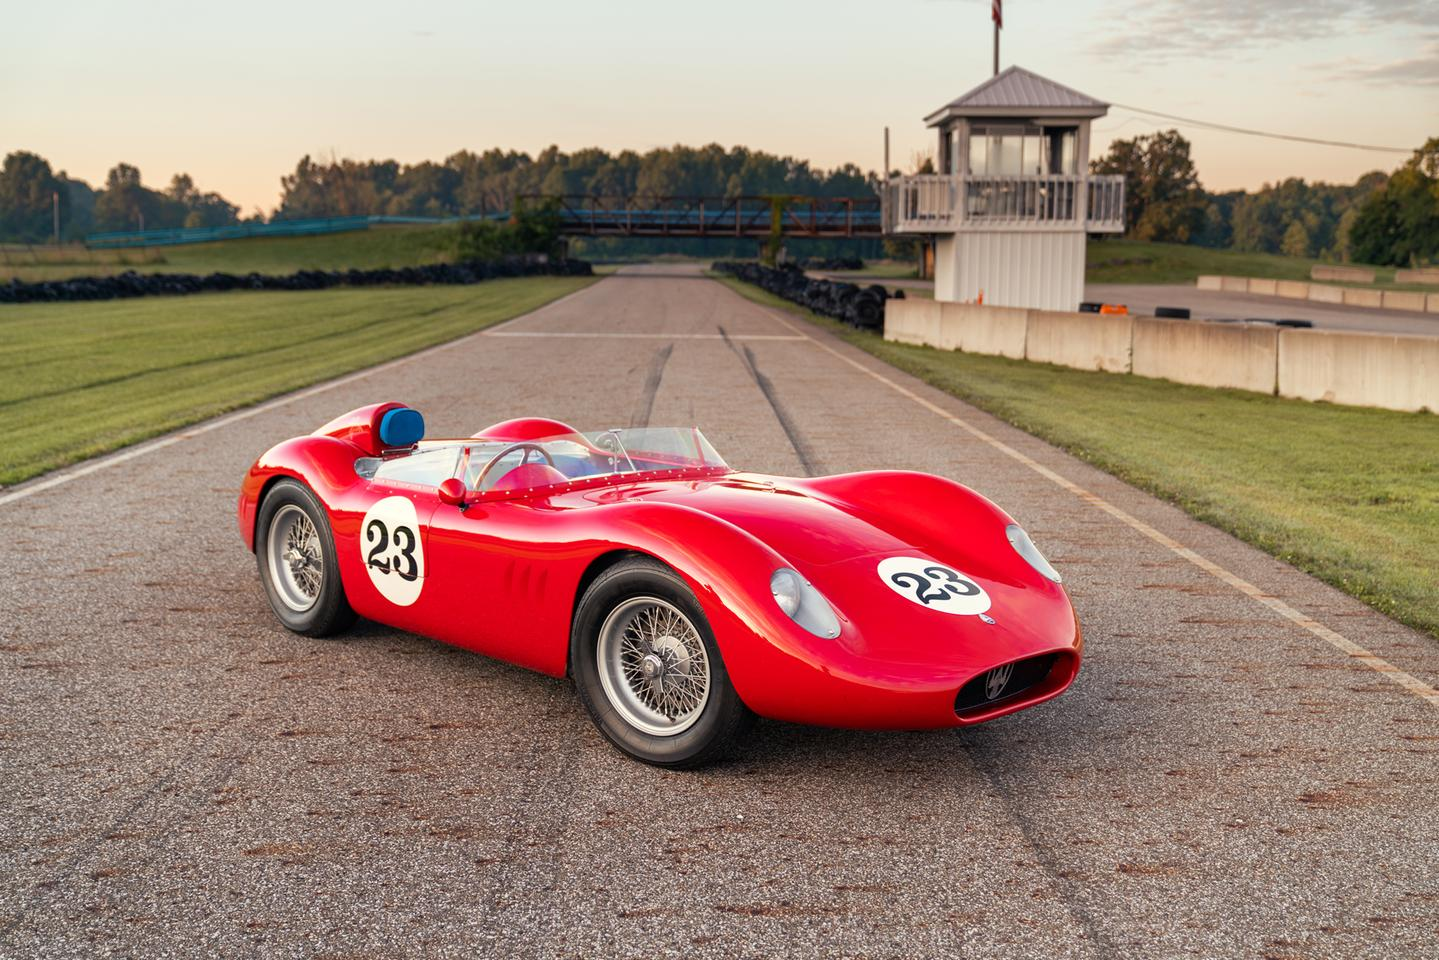 This 1957 Maserati 200 SI will go to auction during Monterey Car Week with Gooding & Co (Lot 46) on Saturday, 14 August 2021 with an official estimate of $4,000,000 - $4,500,000